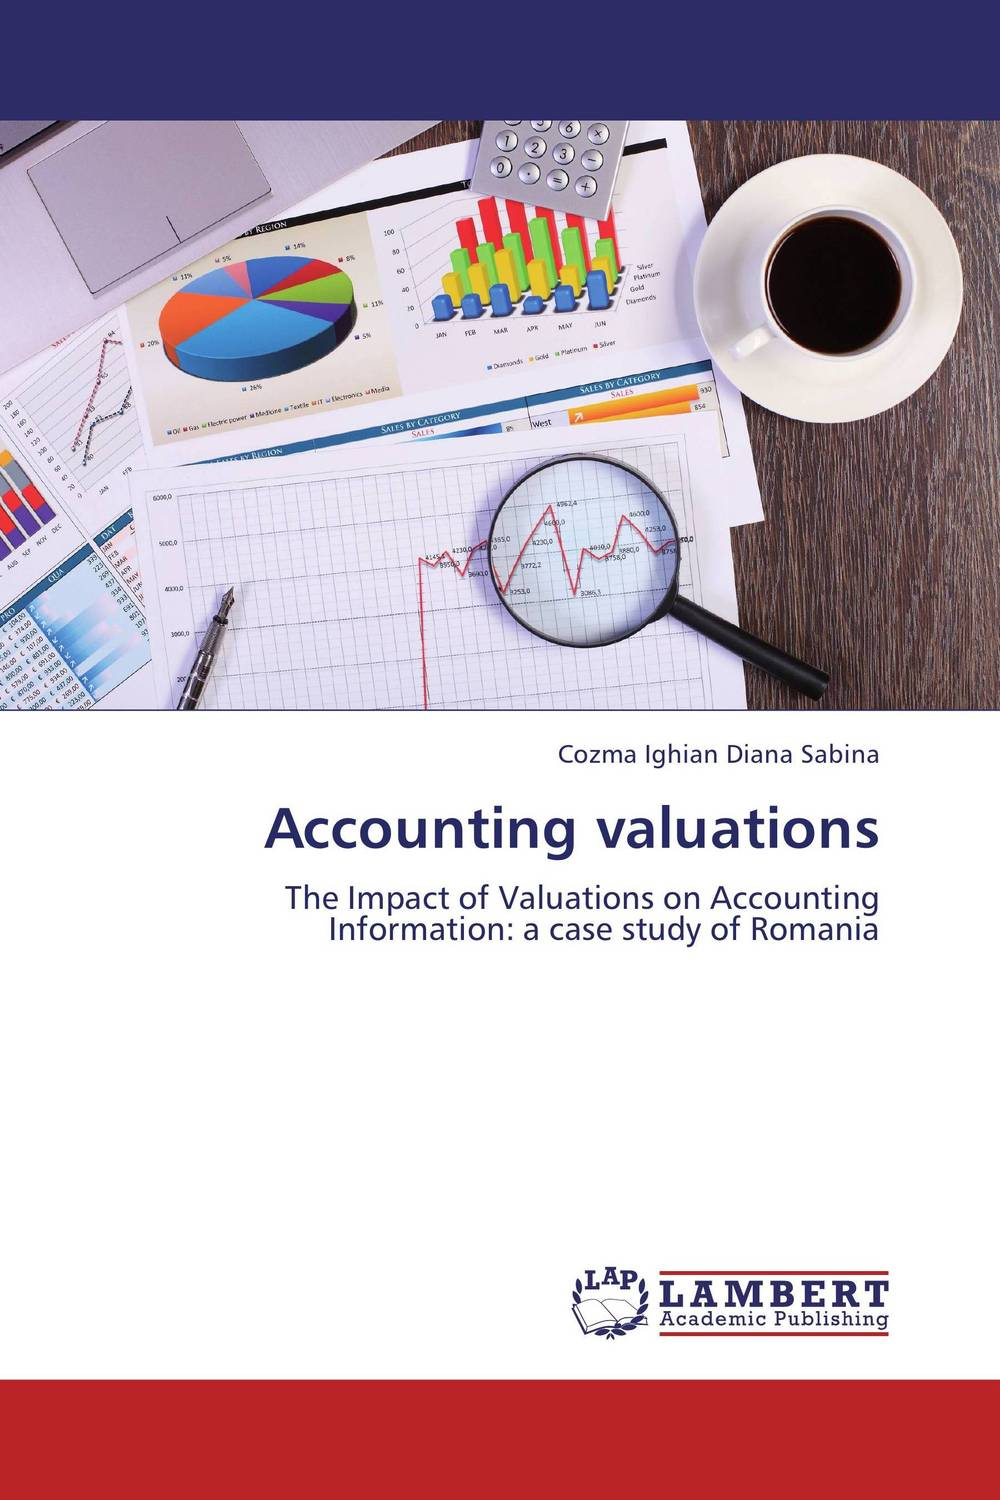 Accounting valuations i want to go to the fair